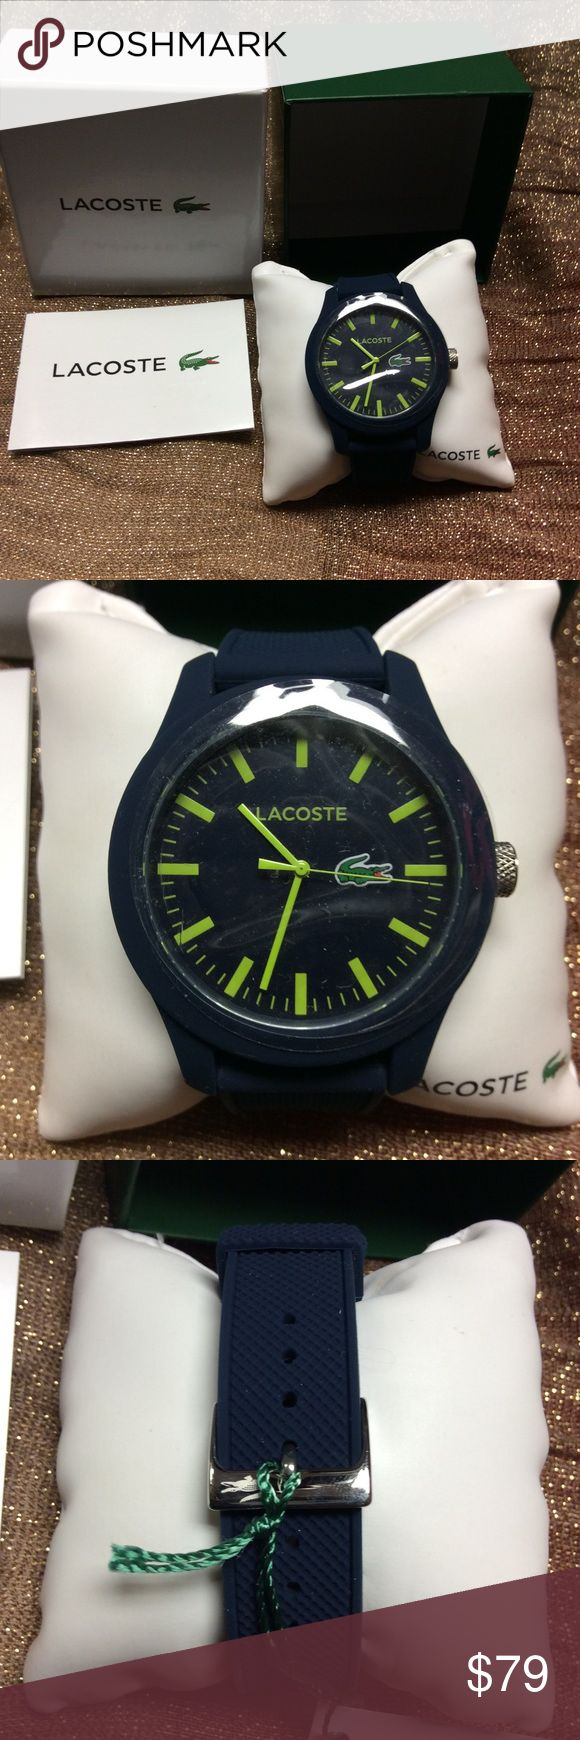 Lacoste Navy Mens Watch 2010792 Collection Lacoste Watch. Makes an amazing gift. Never worn. Great condition. NEW. Make an offer! Make it yours! No flaws . Adjustable strap. Gummy feel. Perfect for everyday Lacoste Accessories Watches